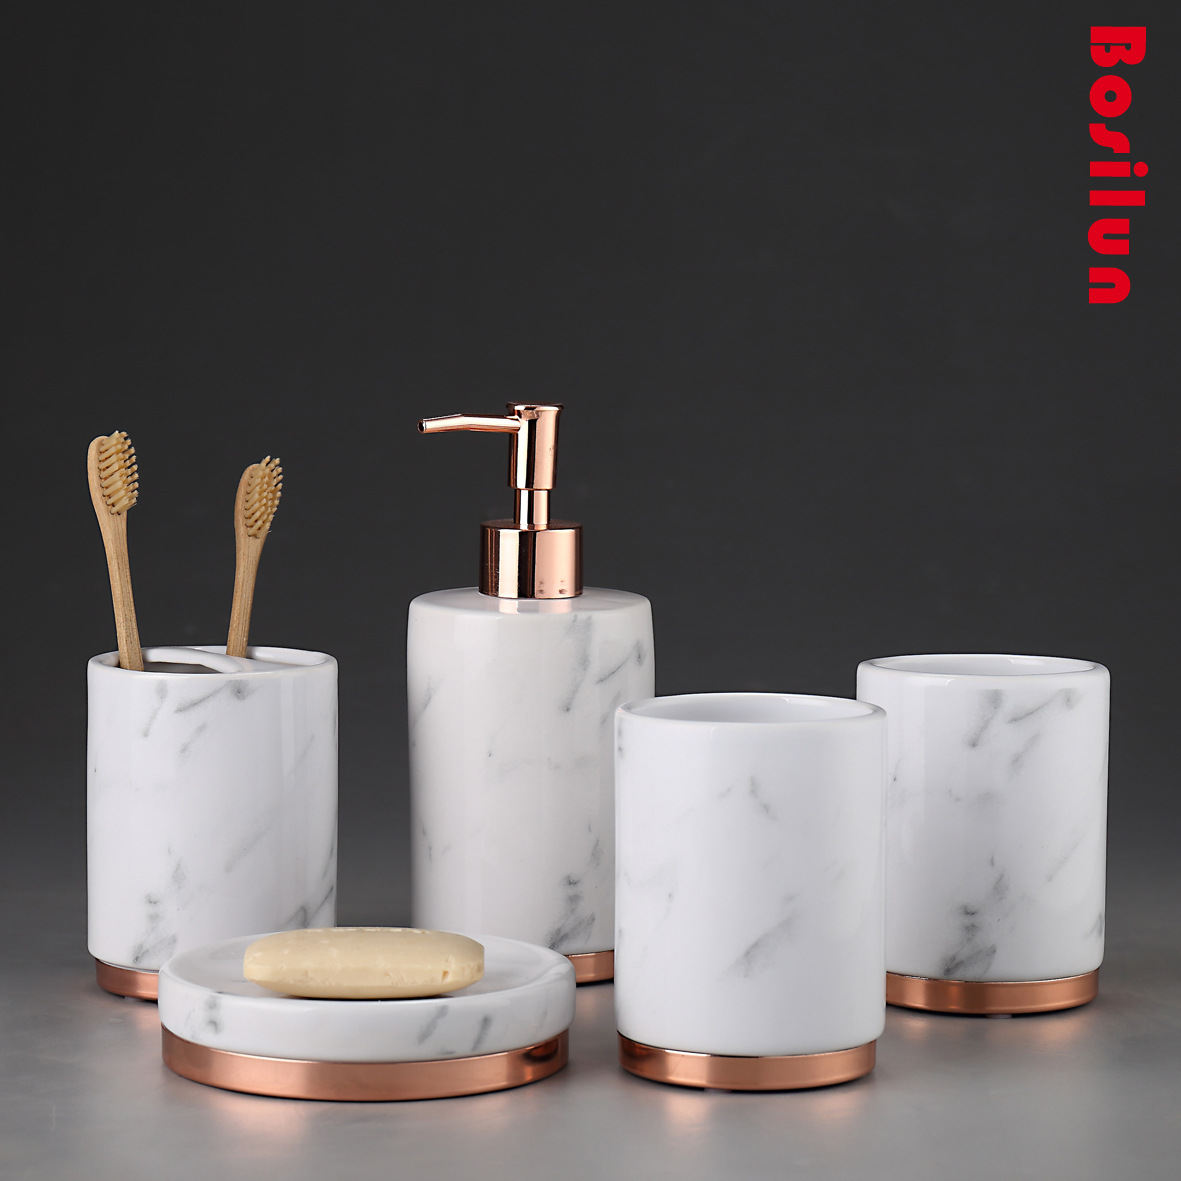 White Bathroom Accessories Ceramic Toothbrush Holder Set Soap Dispenser Soap Dish Lotion Bottle Ceramic Bathroom products image